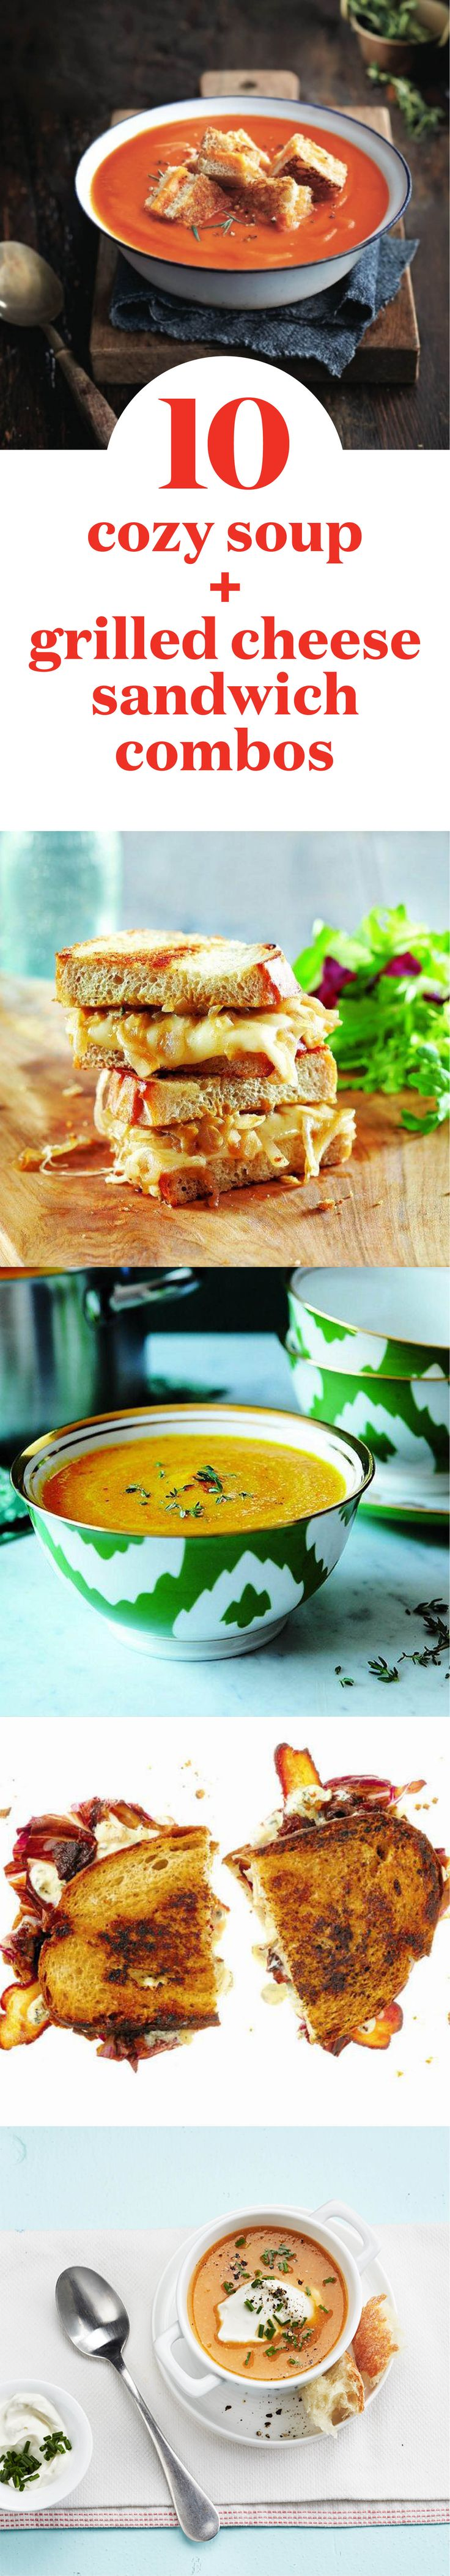 10 cozy soup and grilled cheese sandwich combos | There's nothing quite as comforting as this hot and delicious pairing. #NationalGrilledCheeseDay